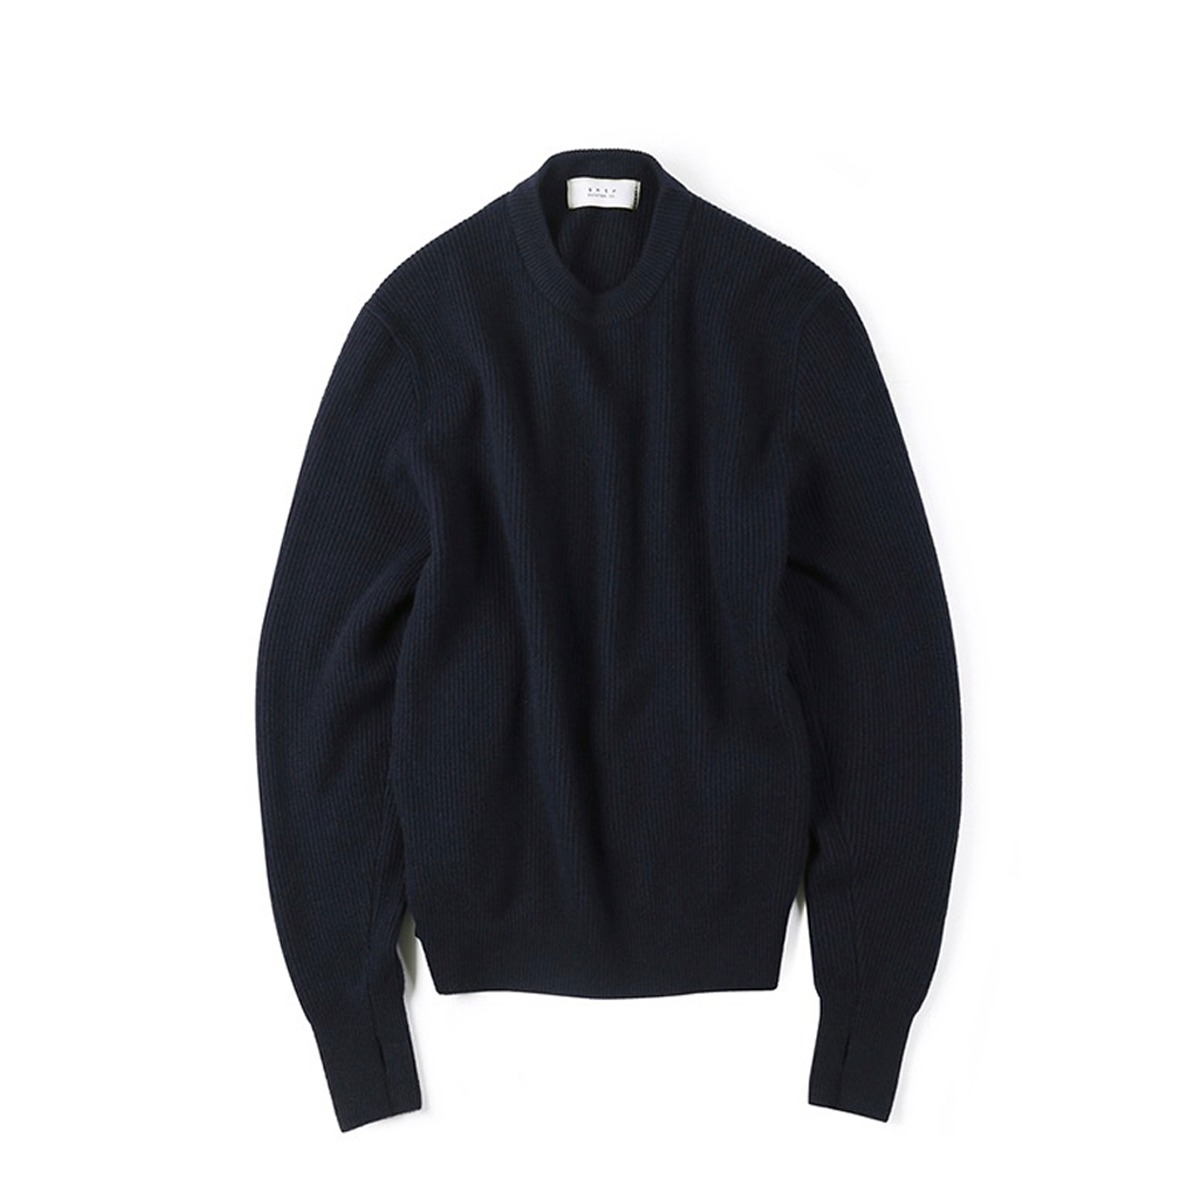 [SHIRTER] WANDERER CREW NECK KNIT 'DARK NAVY'